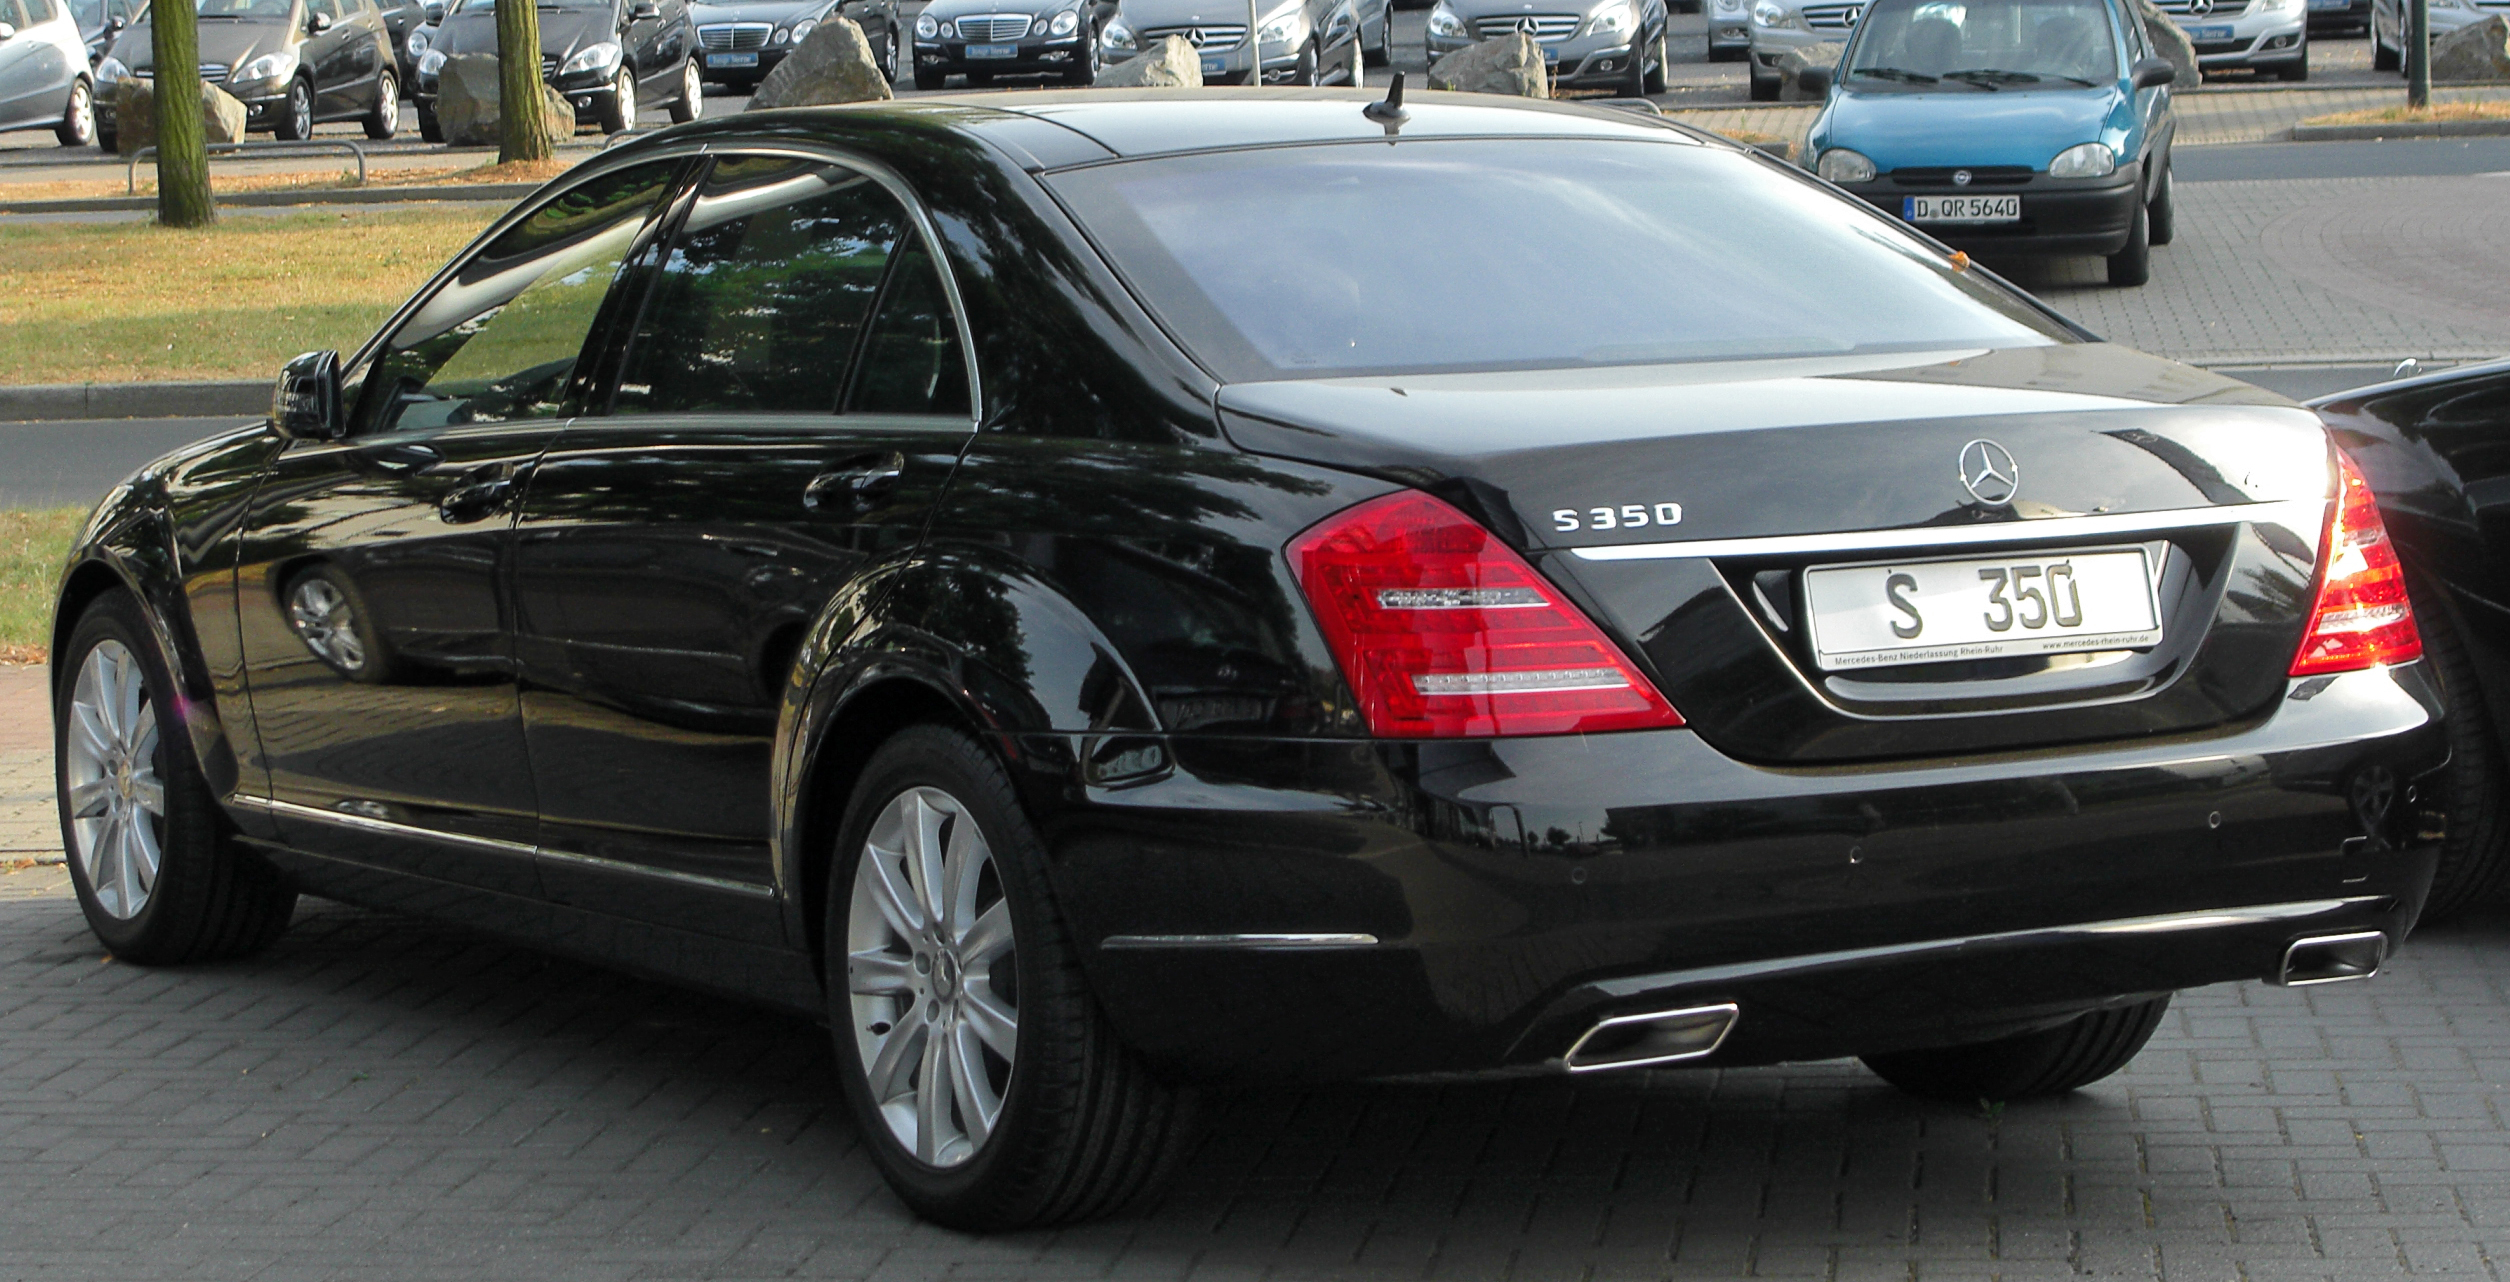 description mercedes s 350 4matic l v221 facelift rear images frompo. Black Bedroom Furniture Sets. Home Design Ideas